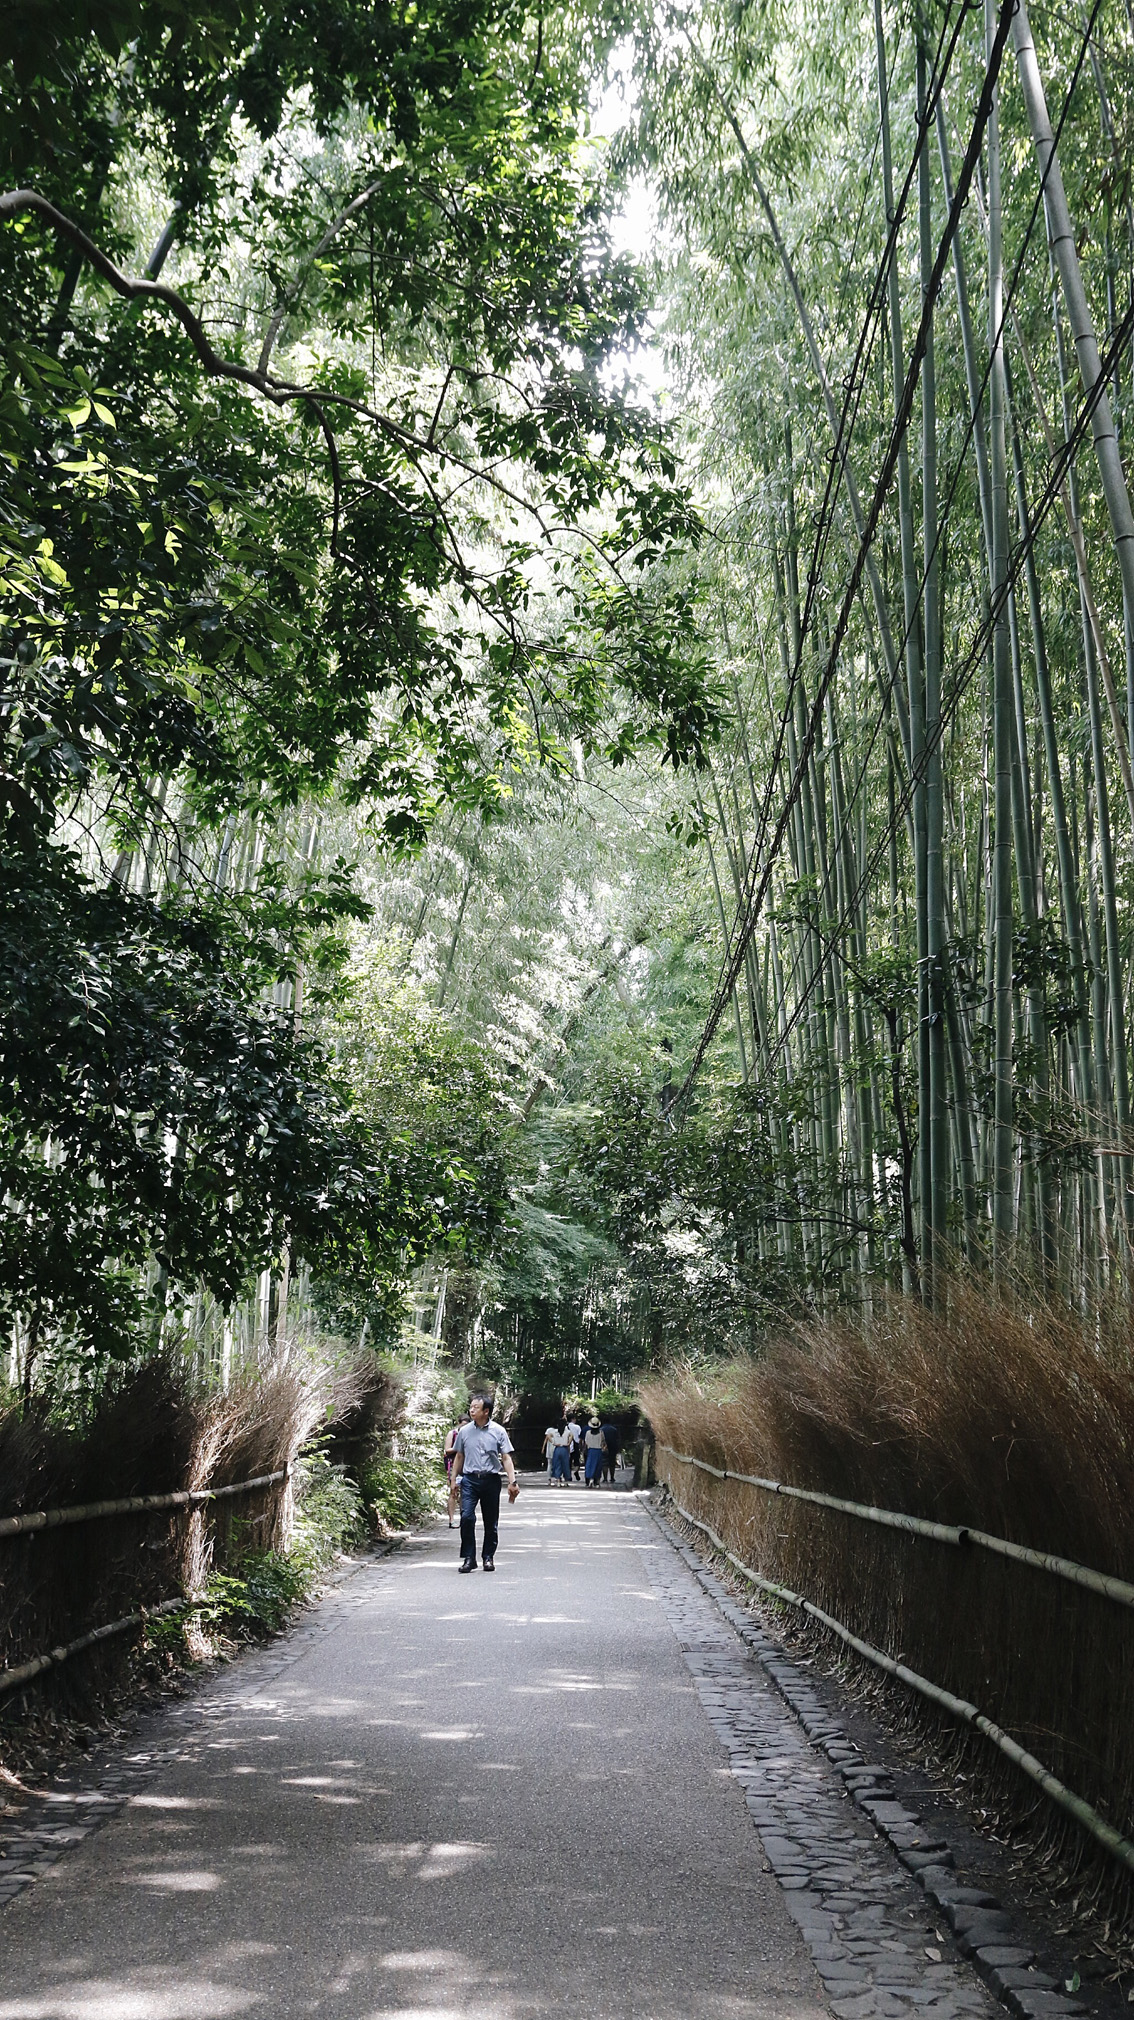 27-1 #Giappotour 4, a magical place : the Bamboo Forest in Arashiyama.